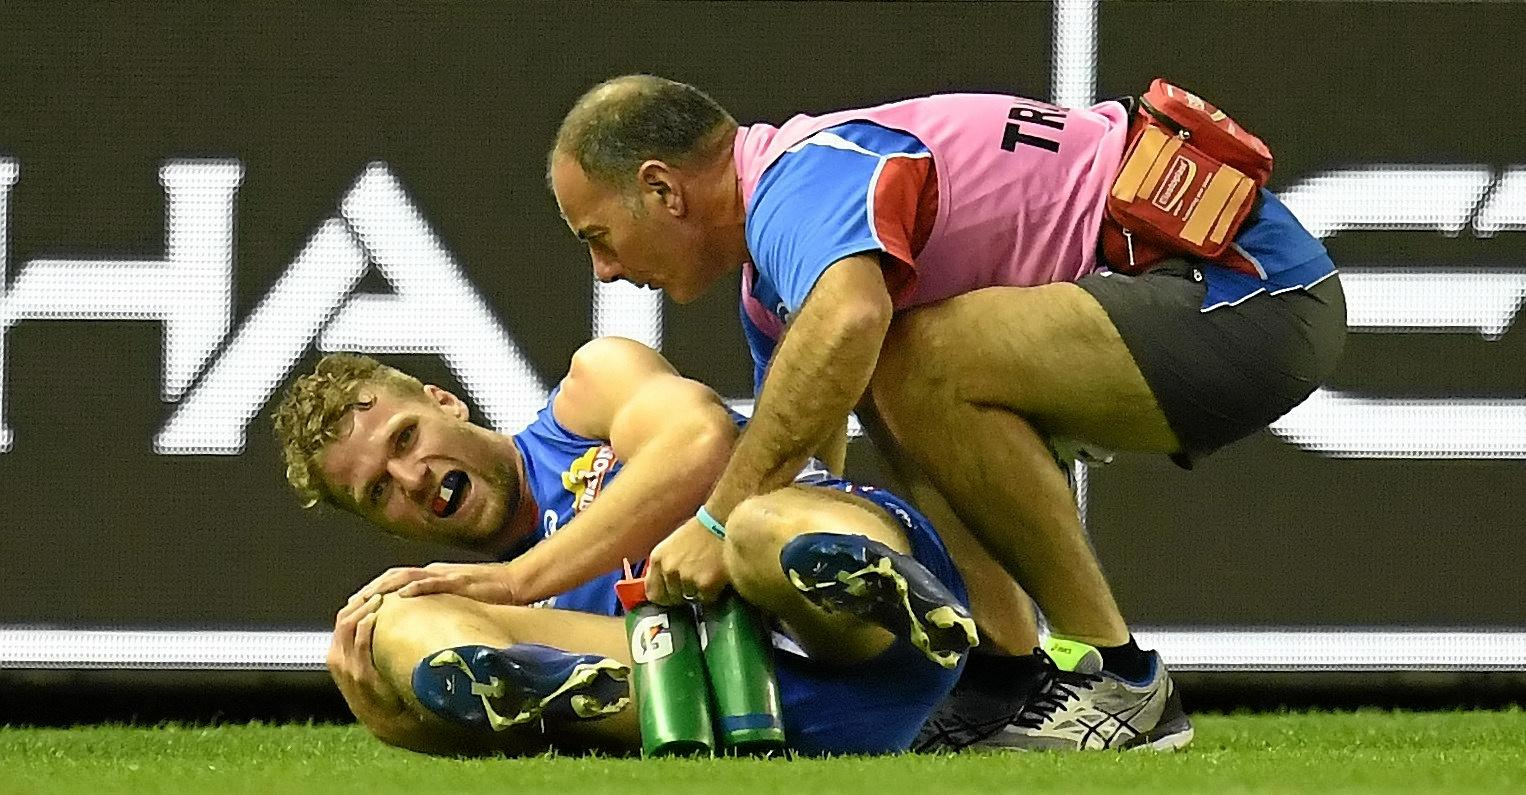 Jake Stringer is treated for his knee injury against Richmond.